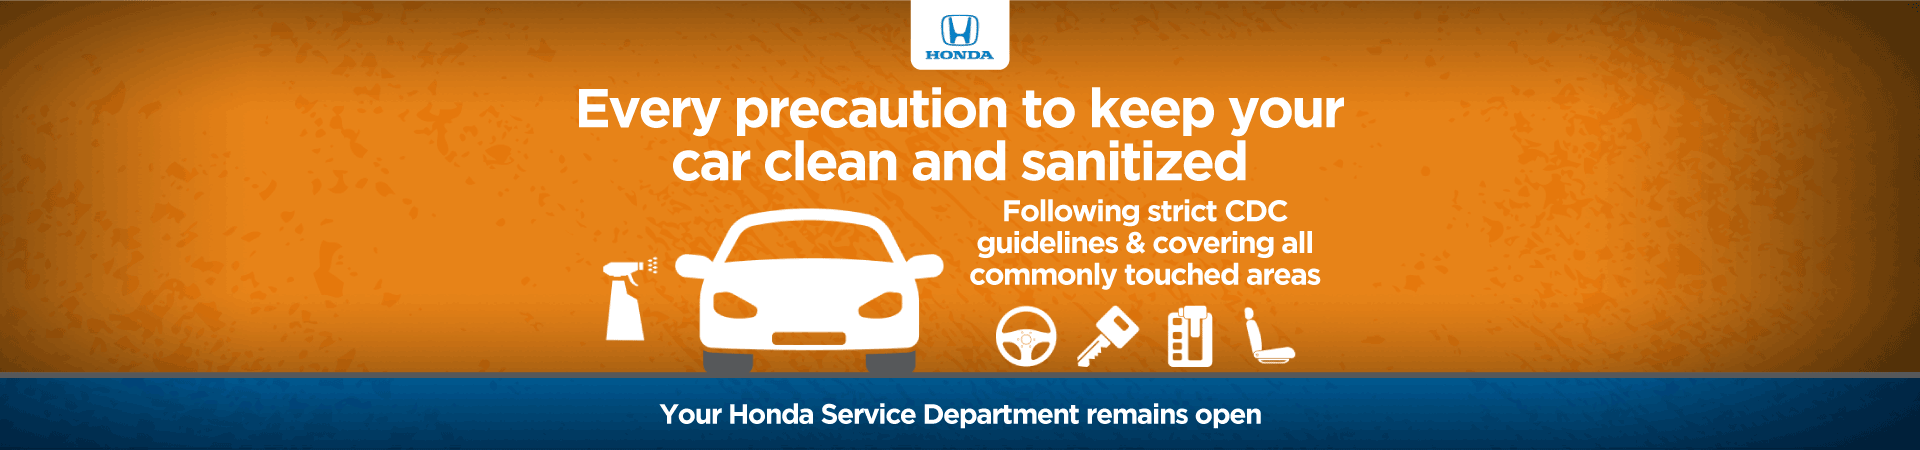 Sanitizing Cars